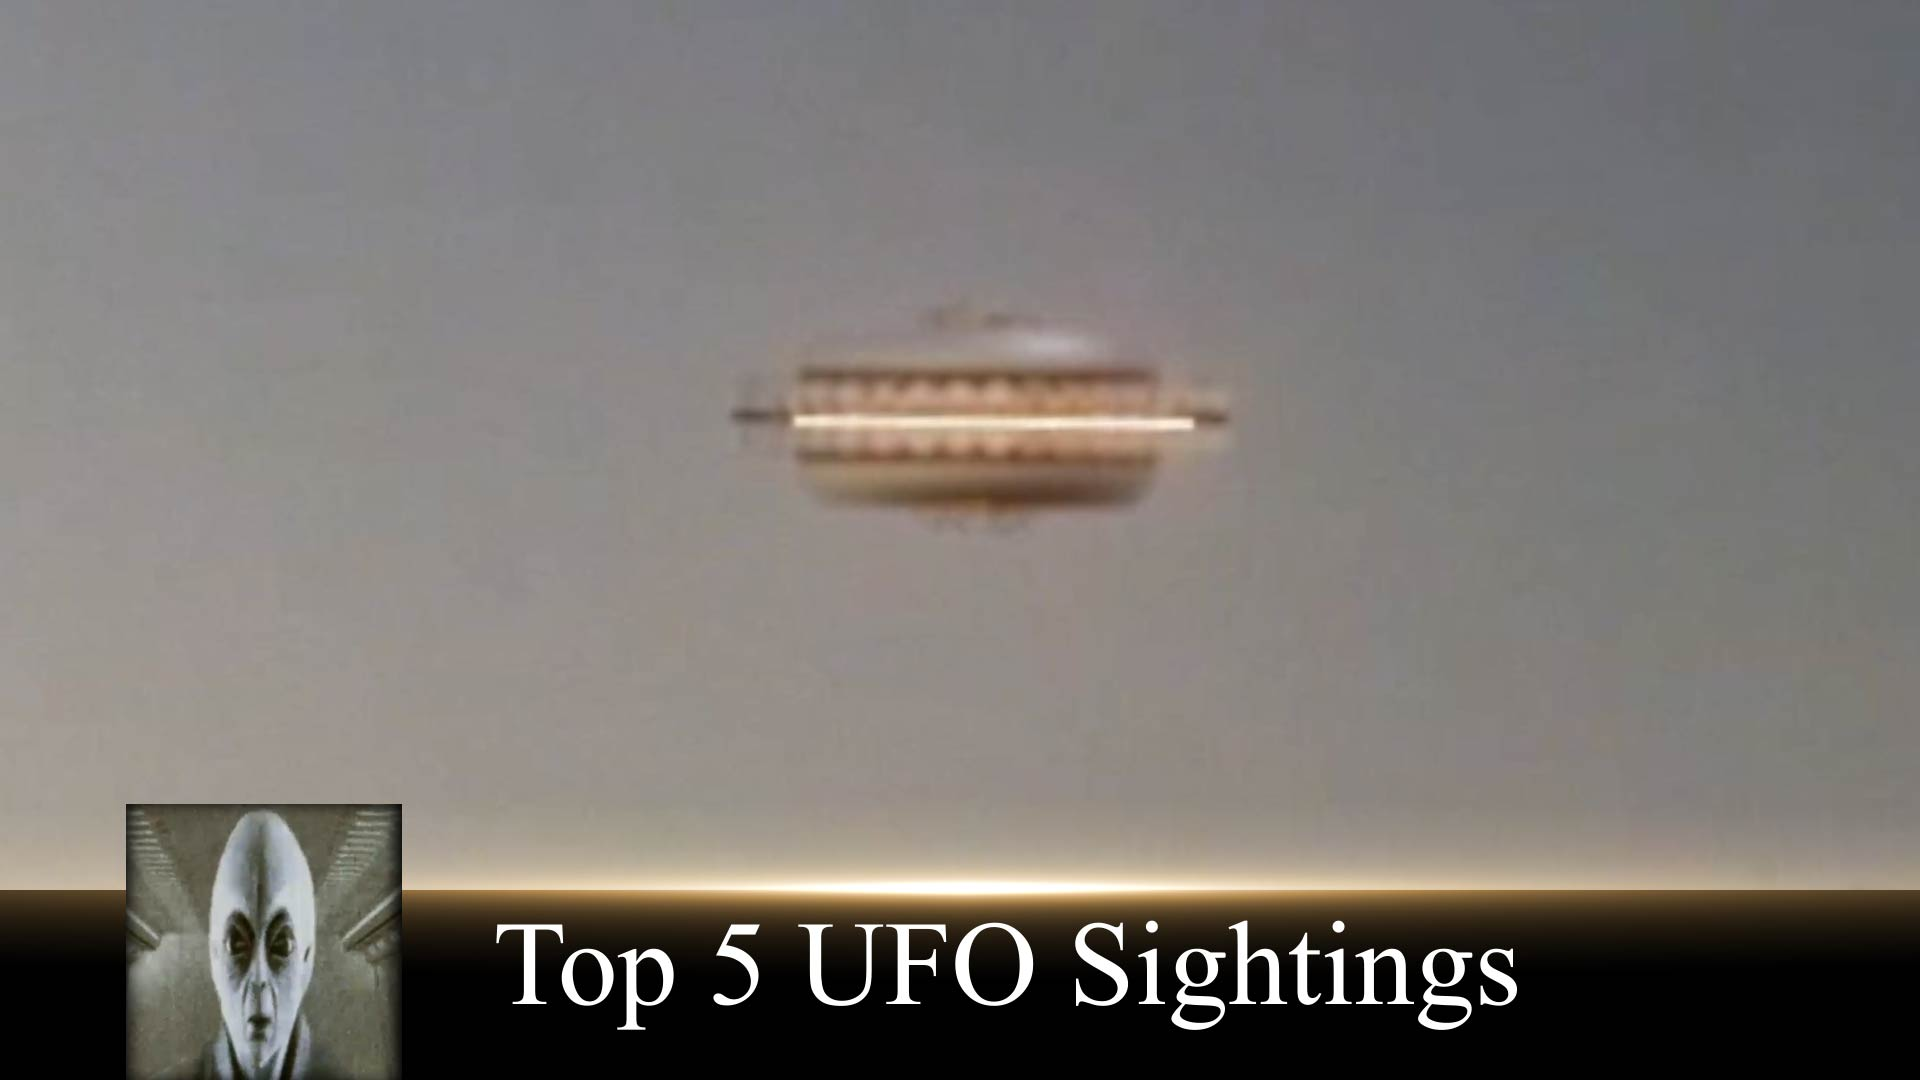 Top 5 UFO Sightings October 27th 2018